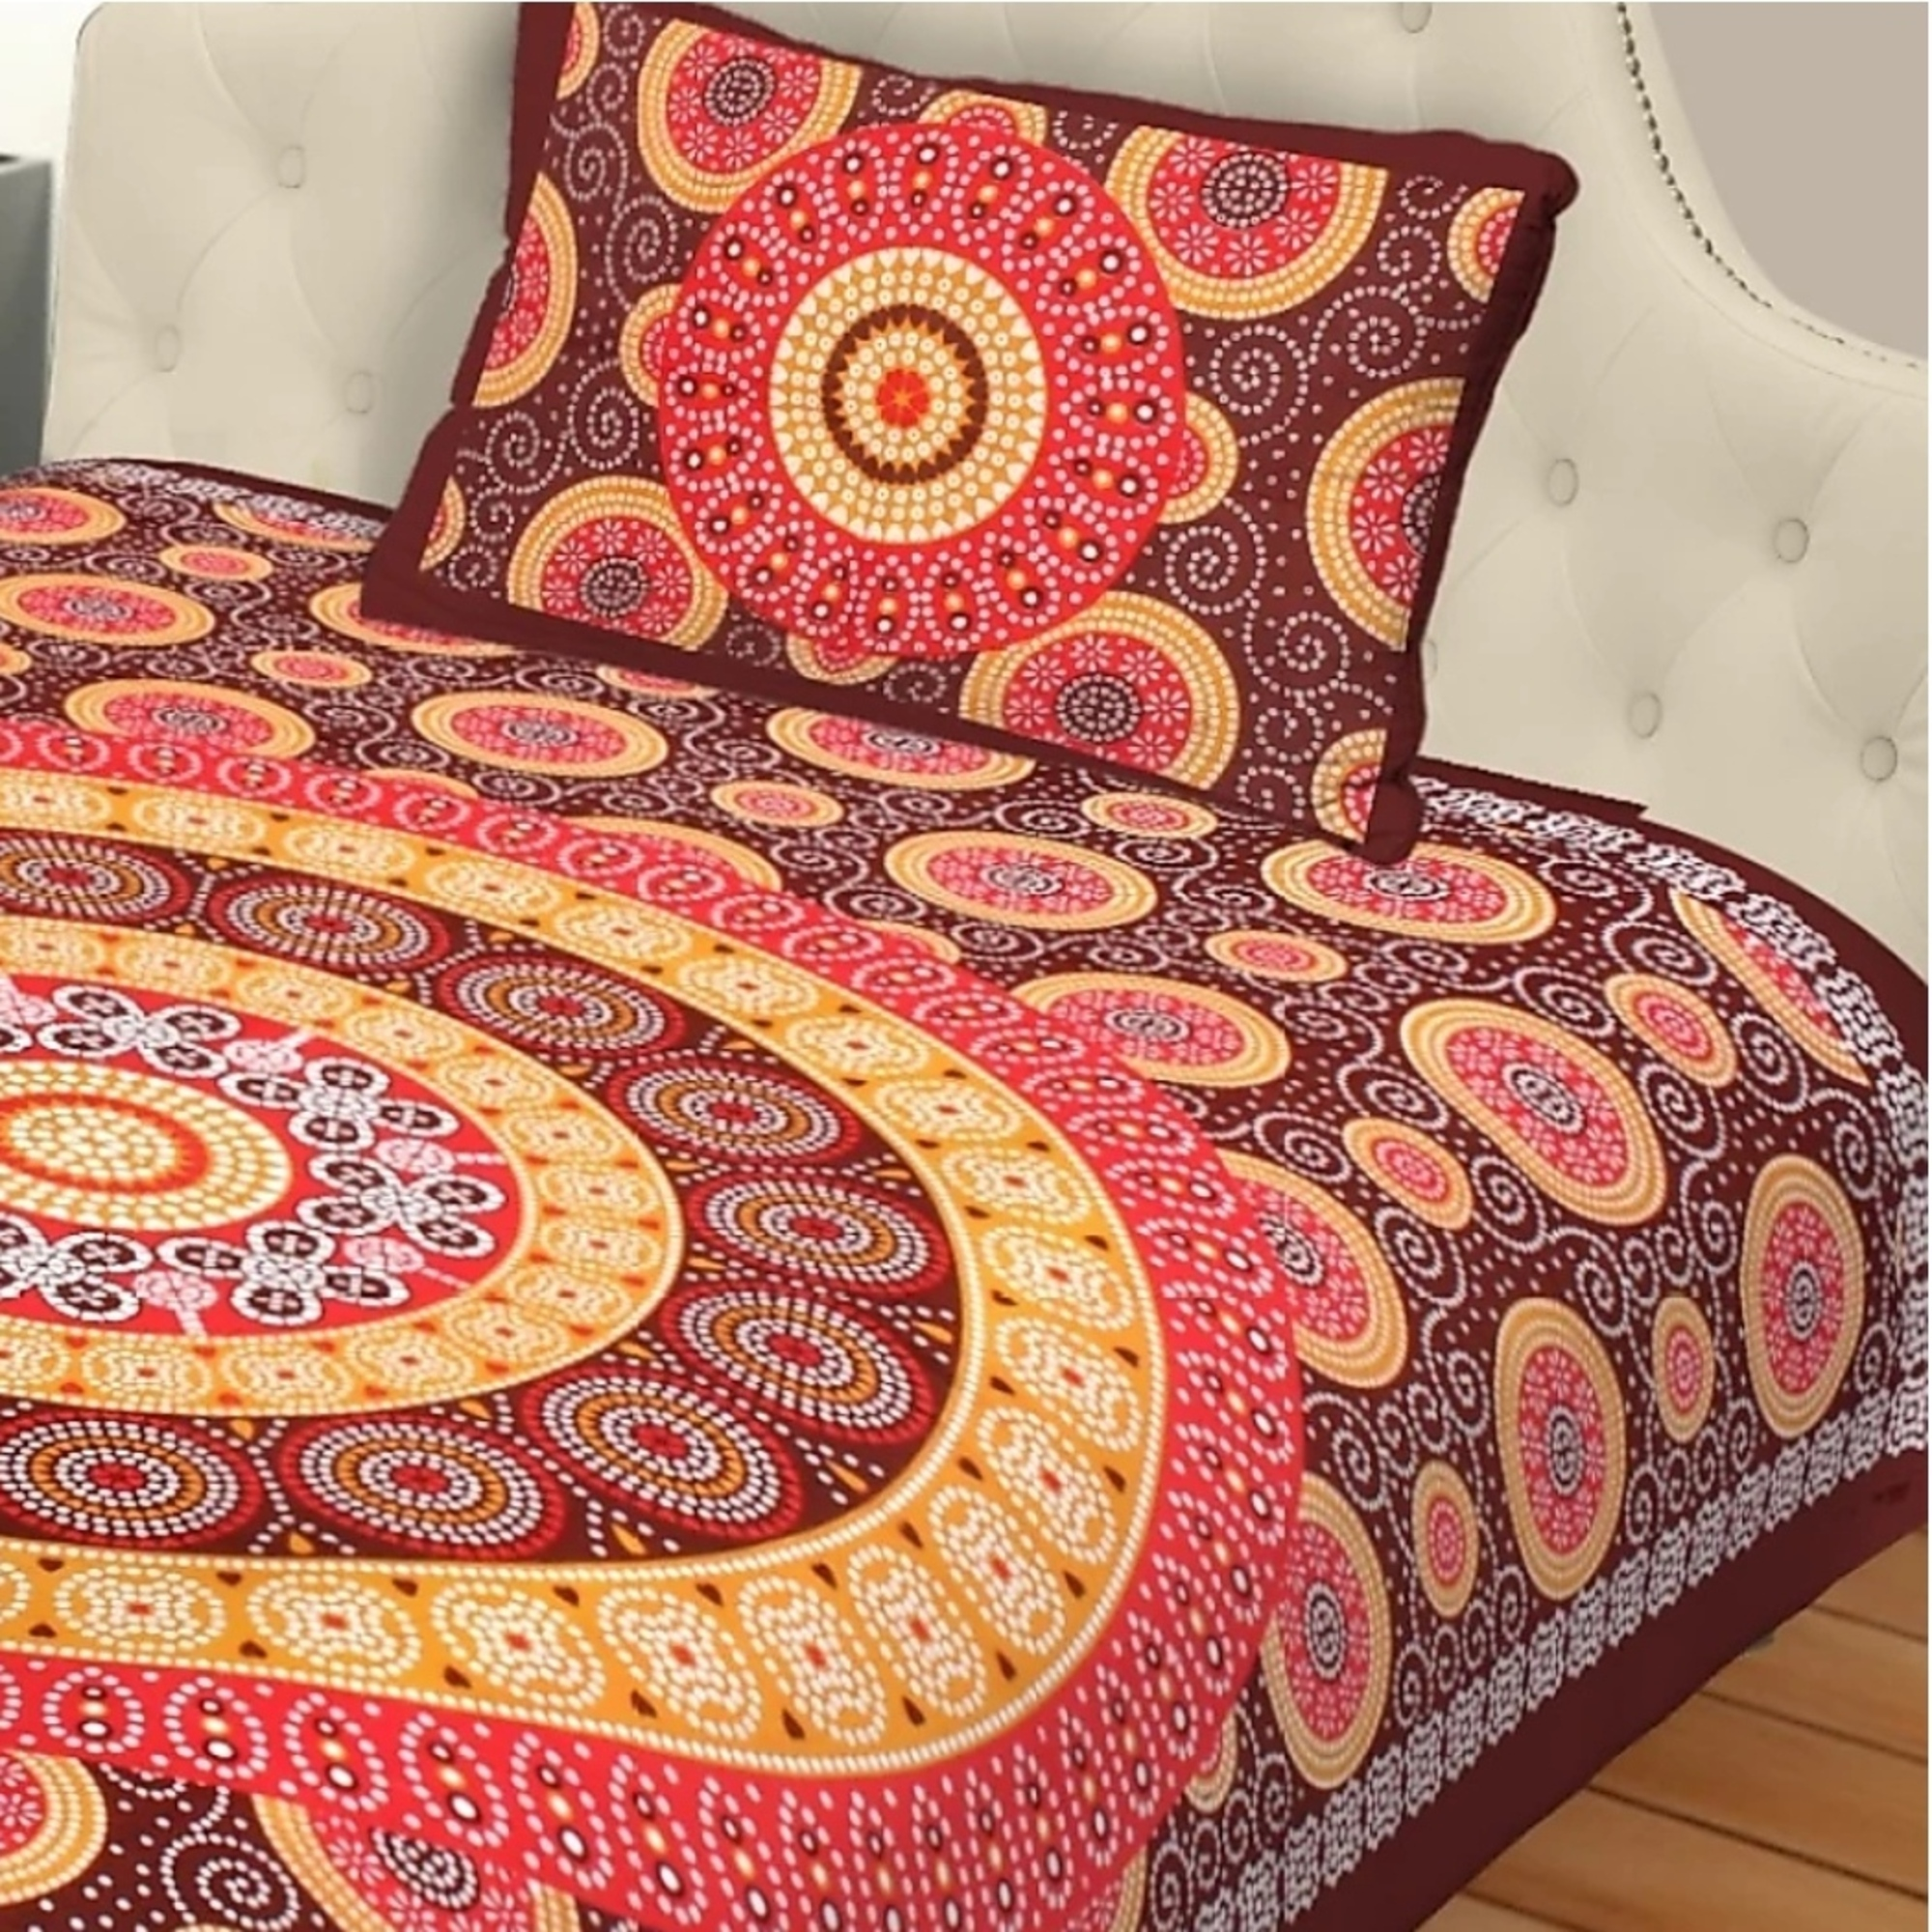 Pooja Fashion - Brown Colored Printed Single Cotton Bedsheet With 1 Pillow Cover